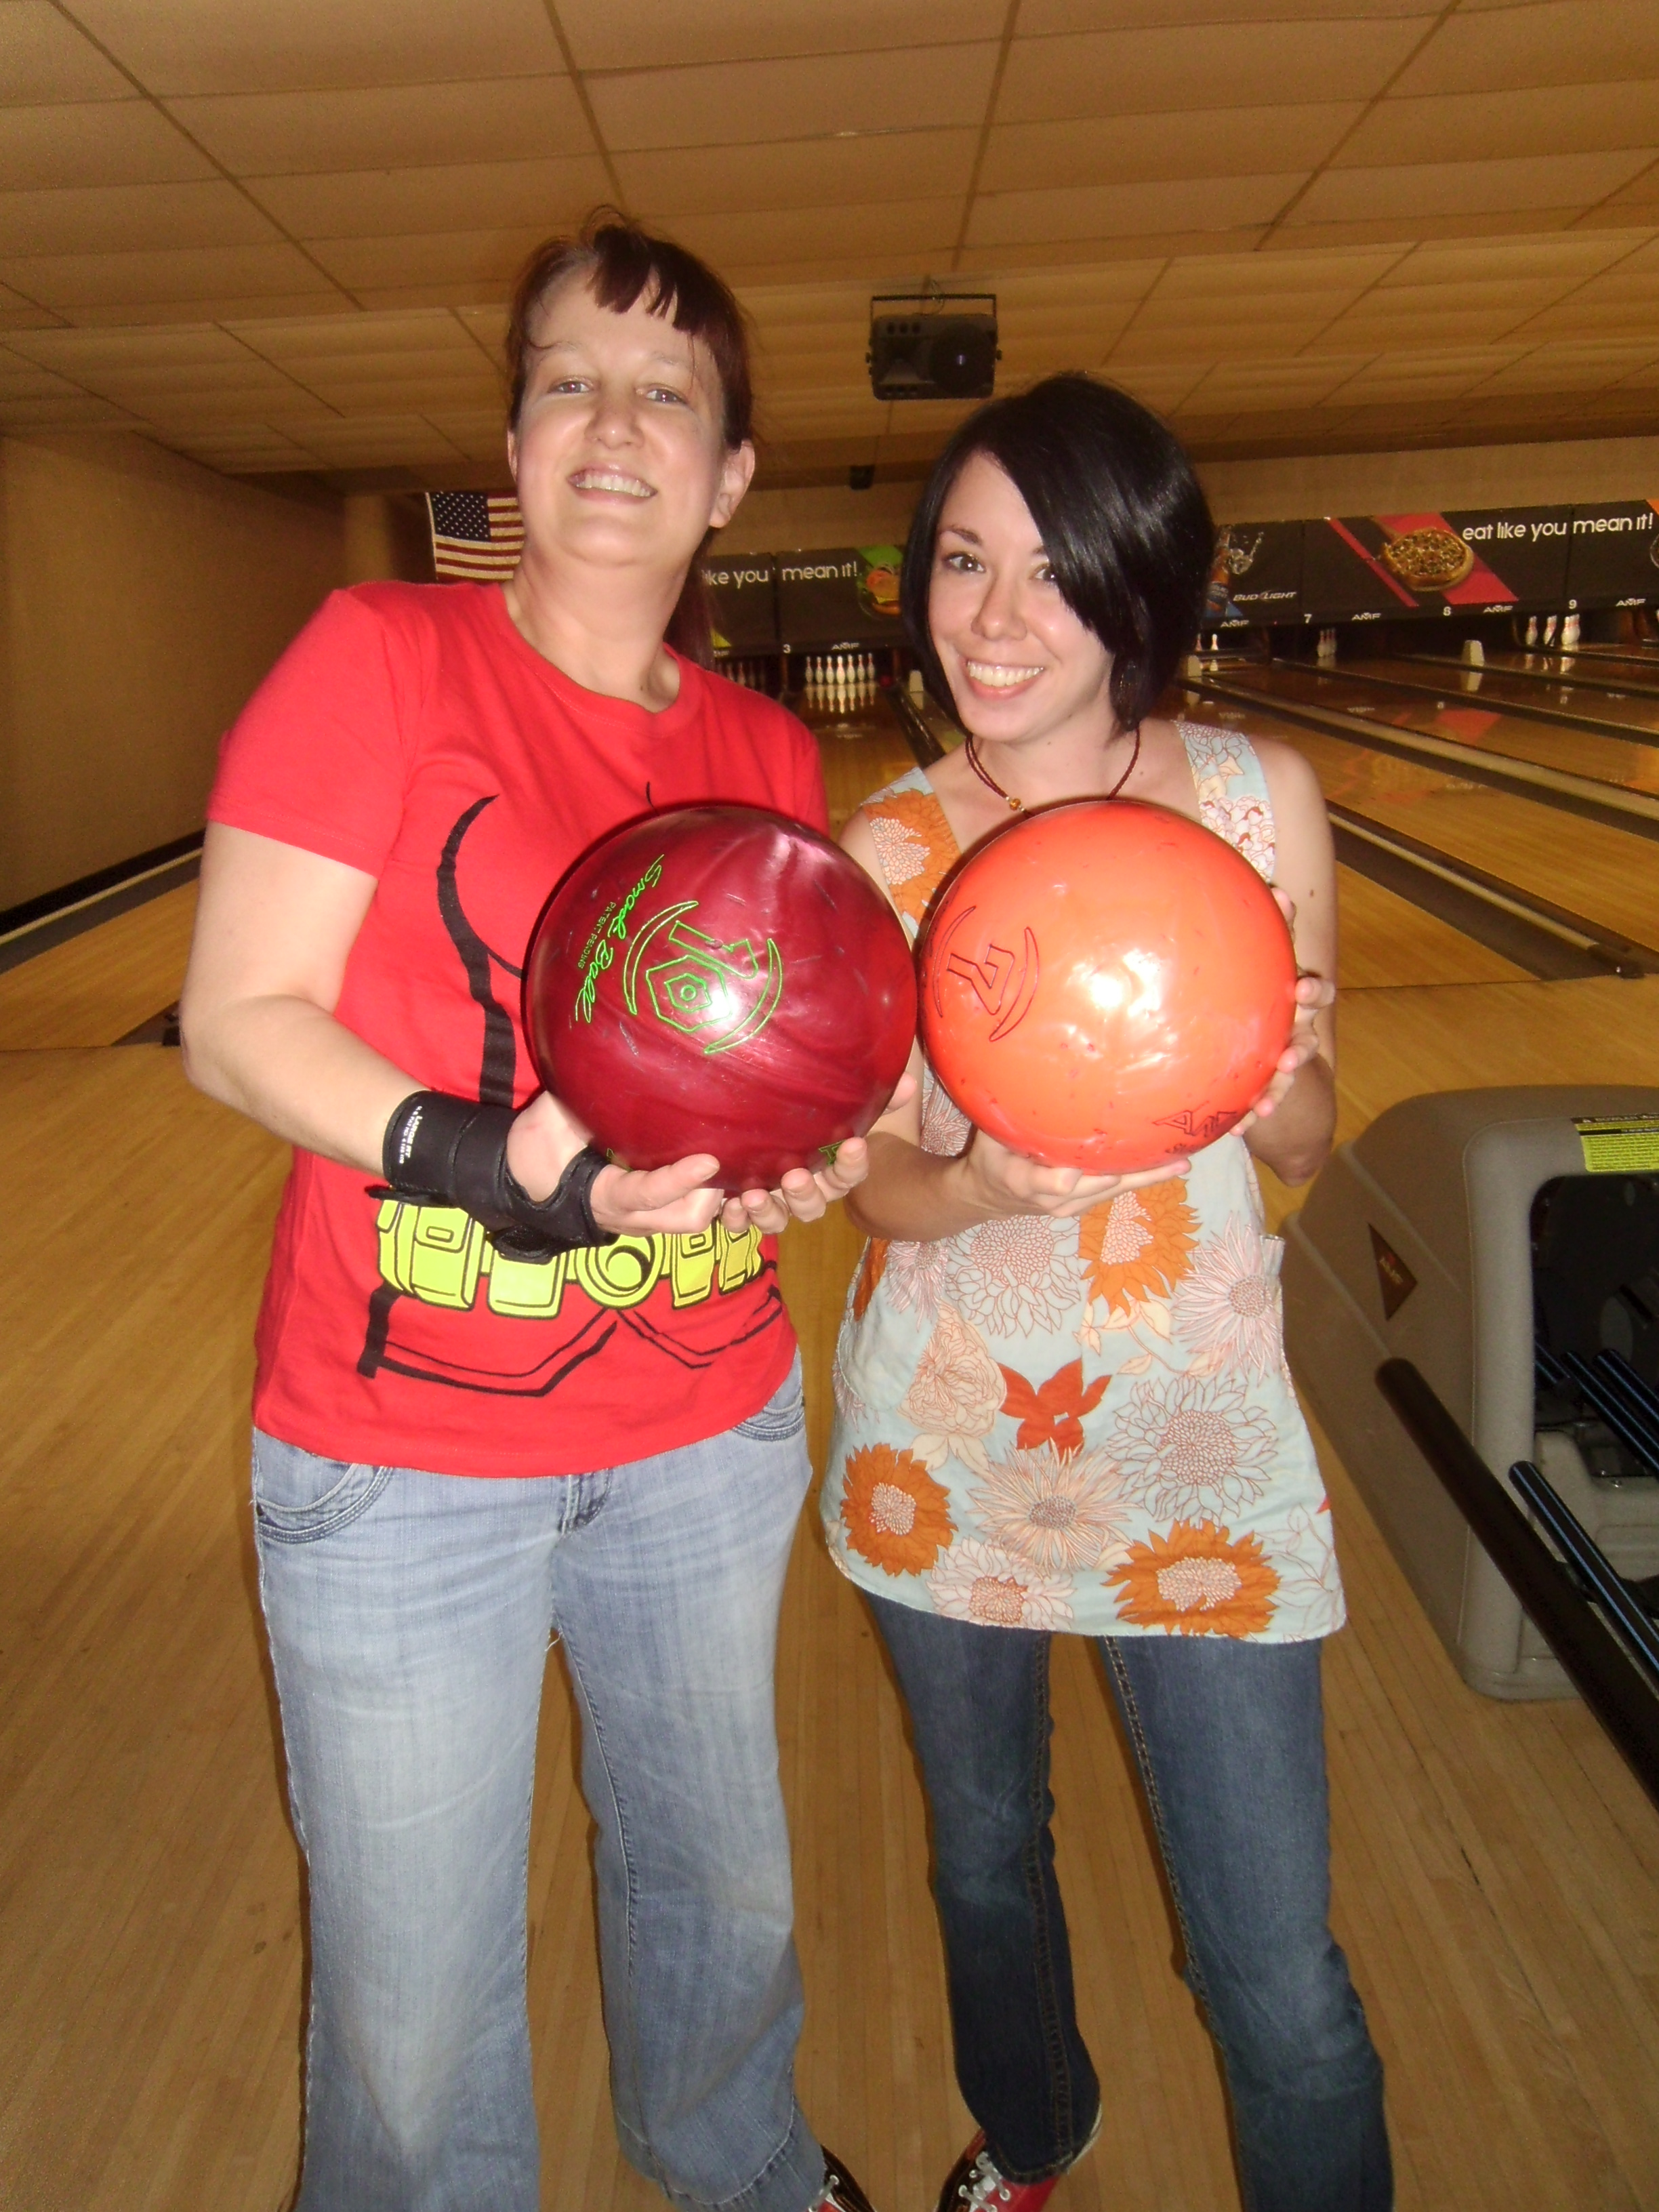 Day 97:  Bowl me over Top 6